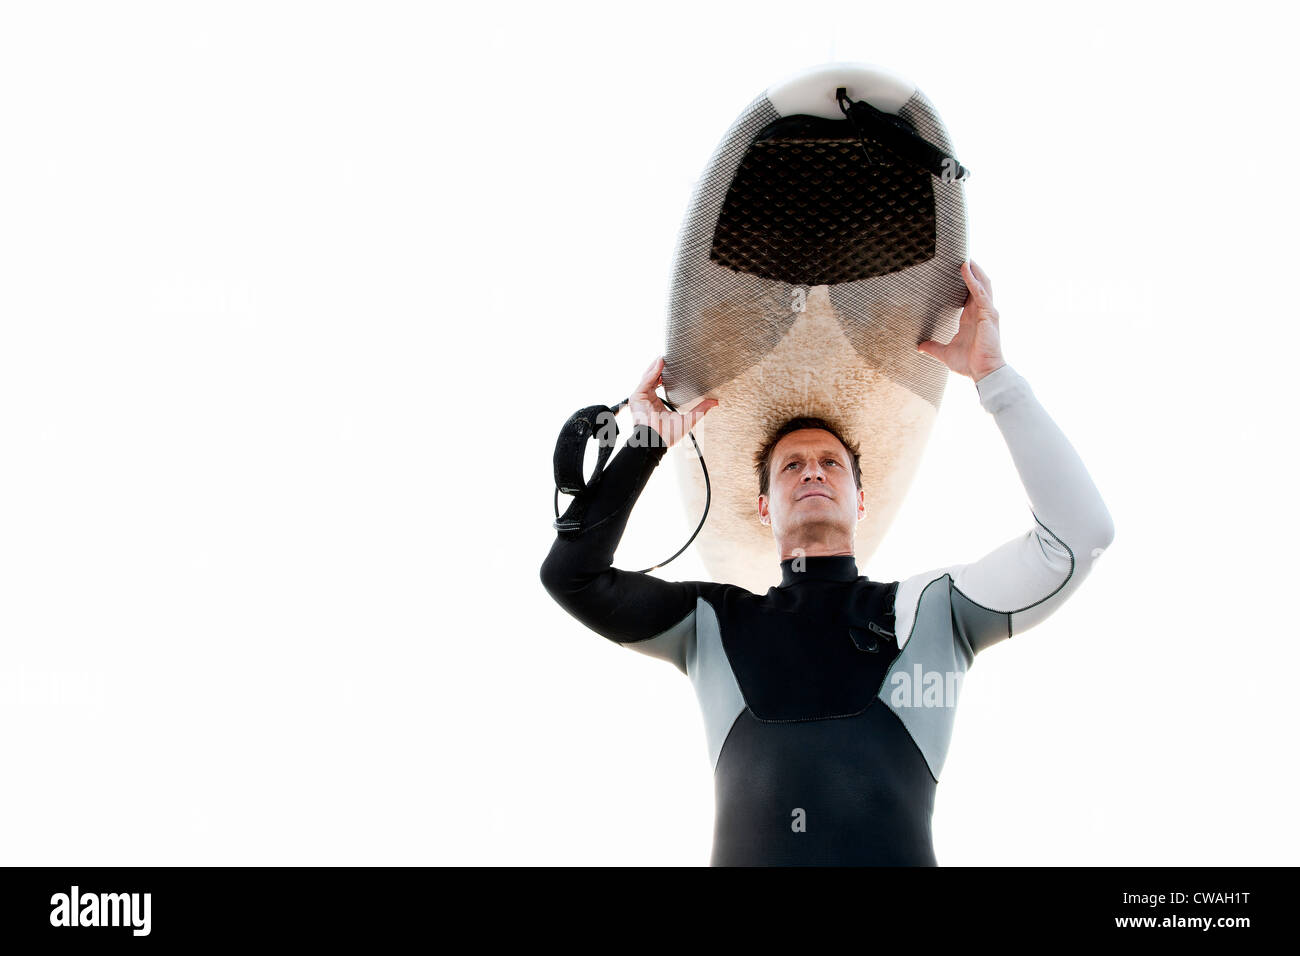 Surfer carrying surfboard on head - Stock Image